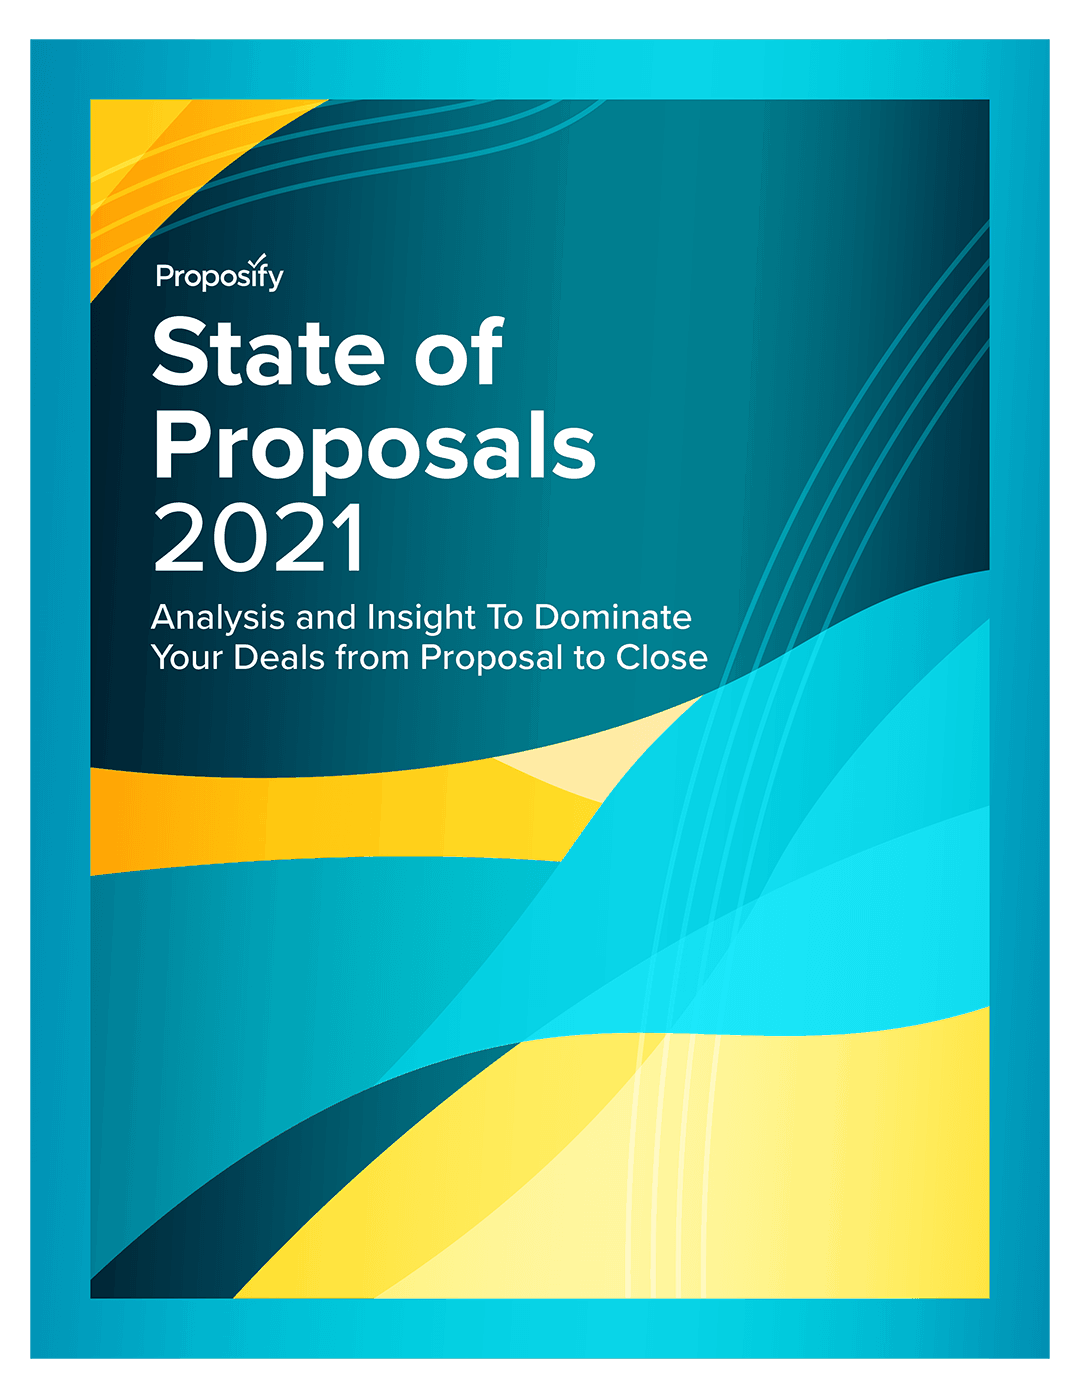 the state of proposals 2021 cover